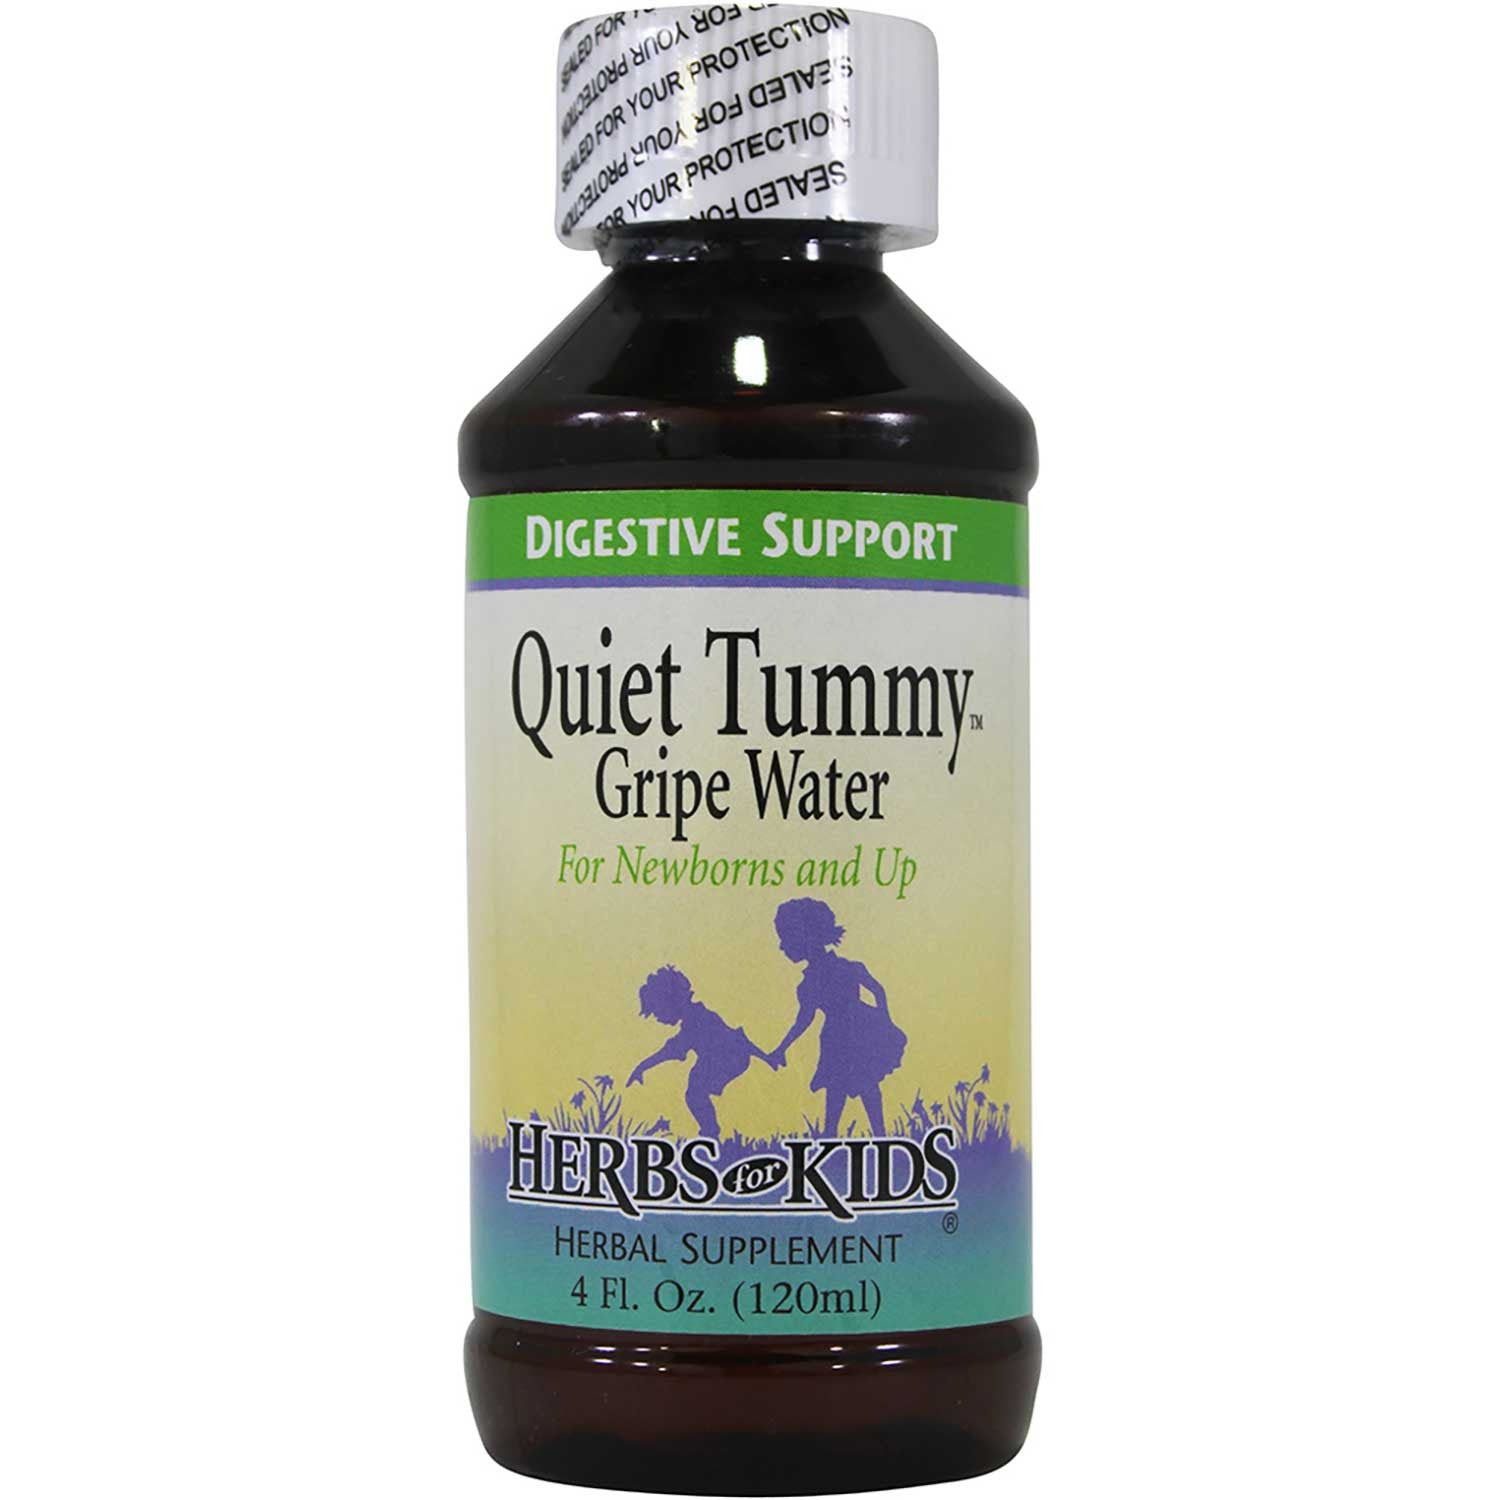 Herbs for Kids Quiet Tummy Gripe Water, 120 ml.-NaturesWisdom